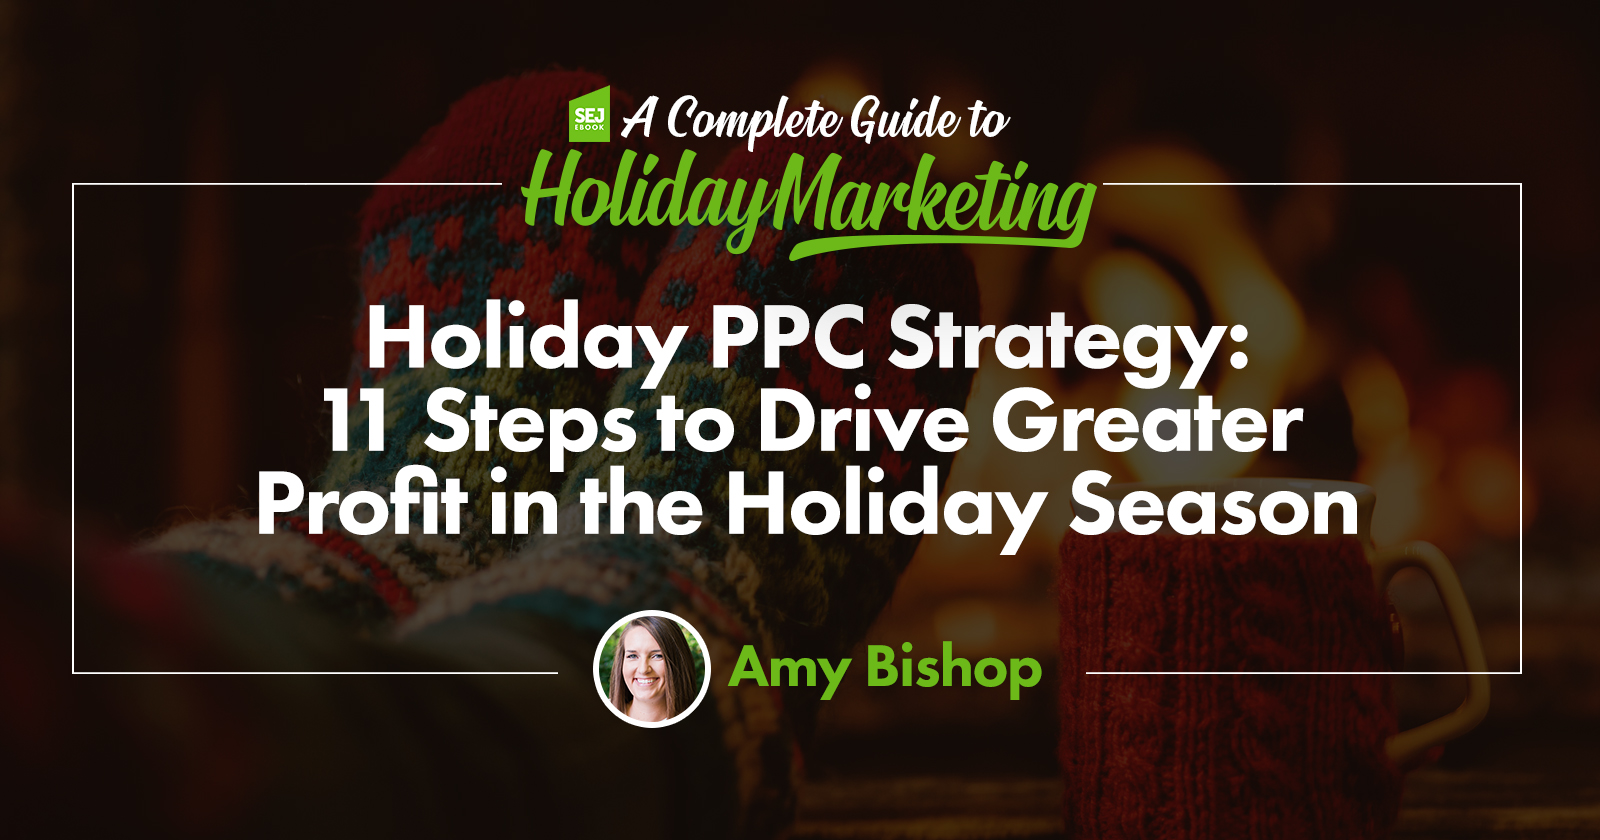 Holiday PPC Strategy: 11 Steps to Drive Greater Profit This Year via @hoffman8